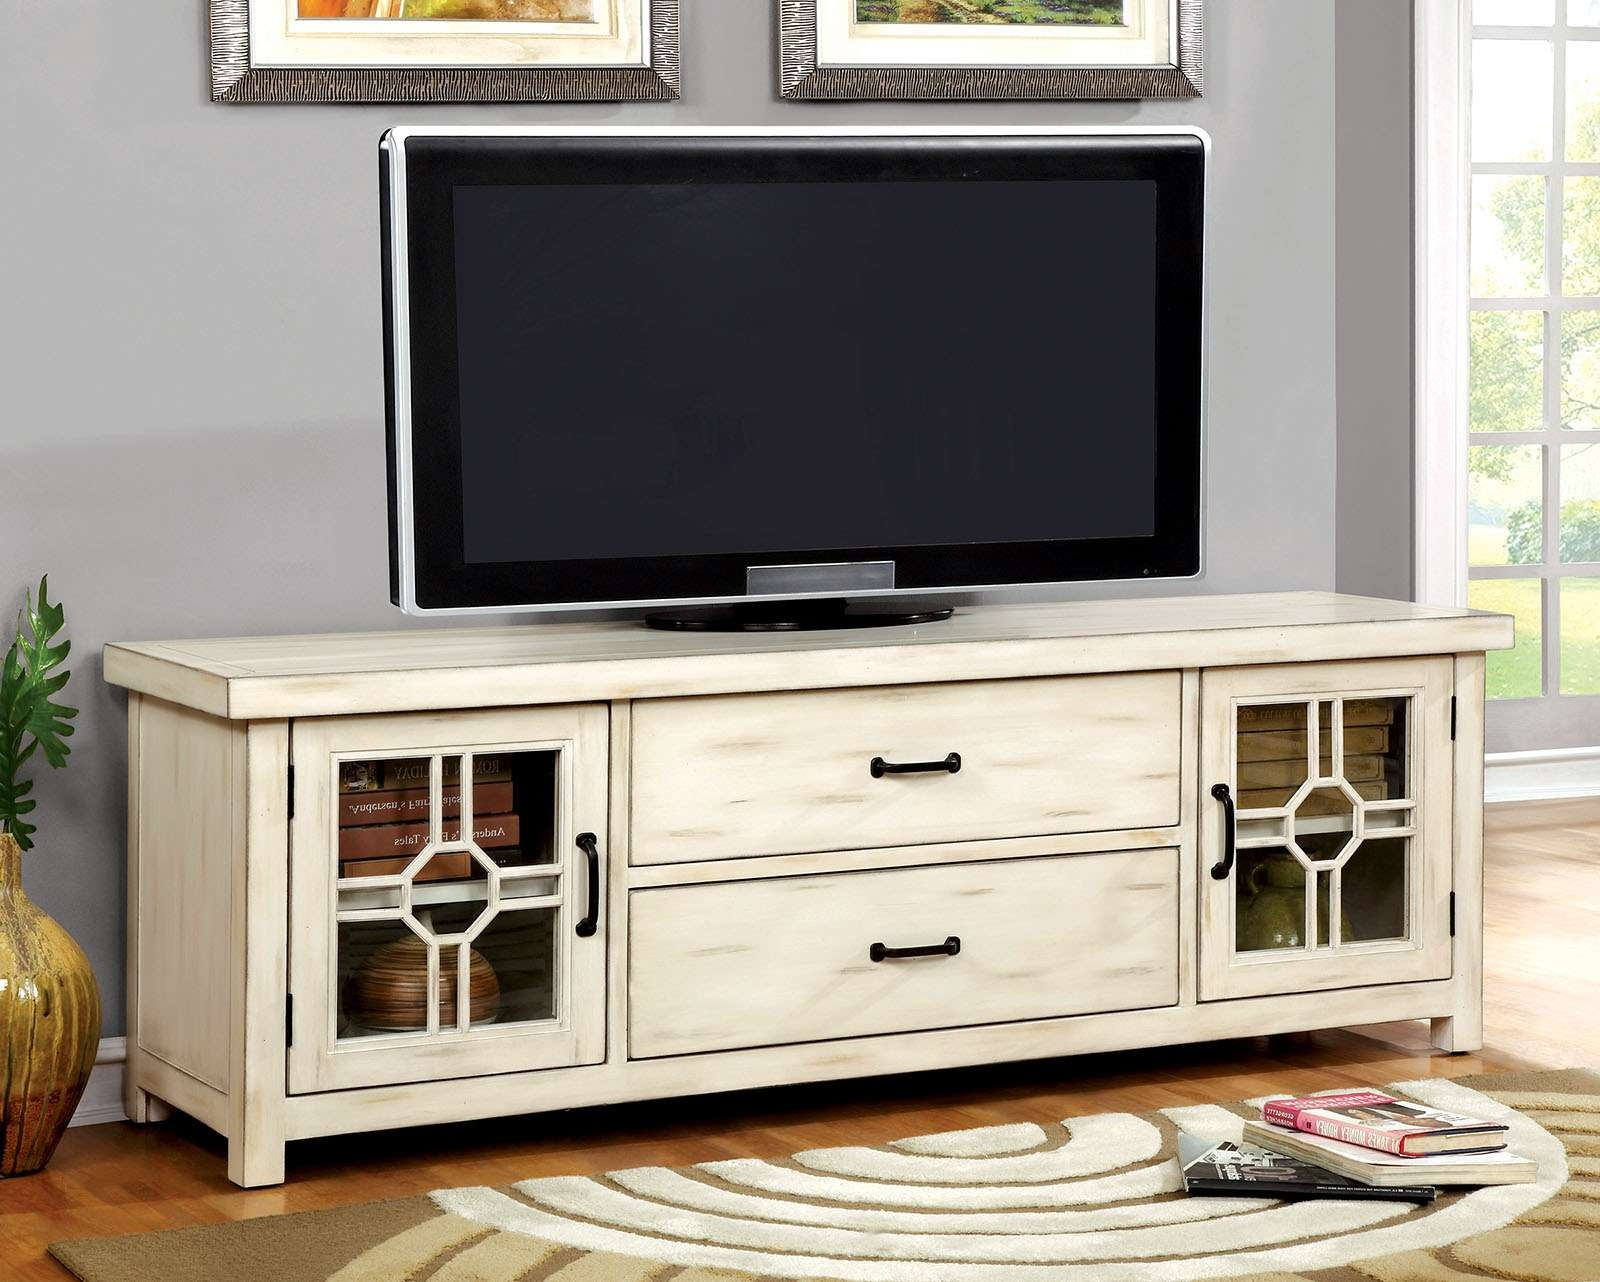 Ideas For Build Rustic Tv Stand — Cabinets, Beds, Sofas And In Rustic Tv Cabinets (View 7 of 20)